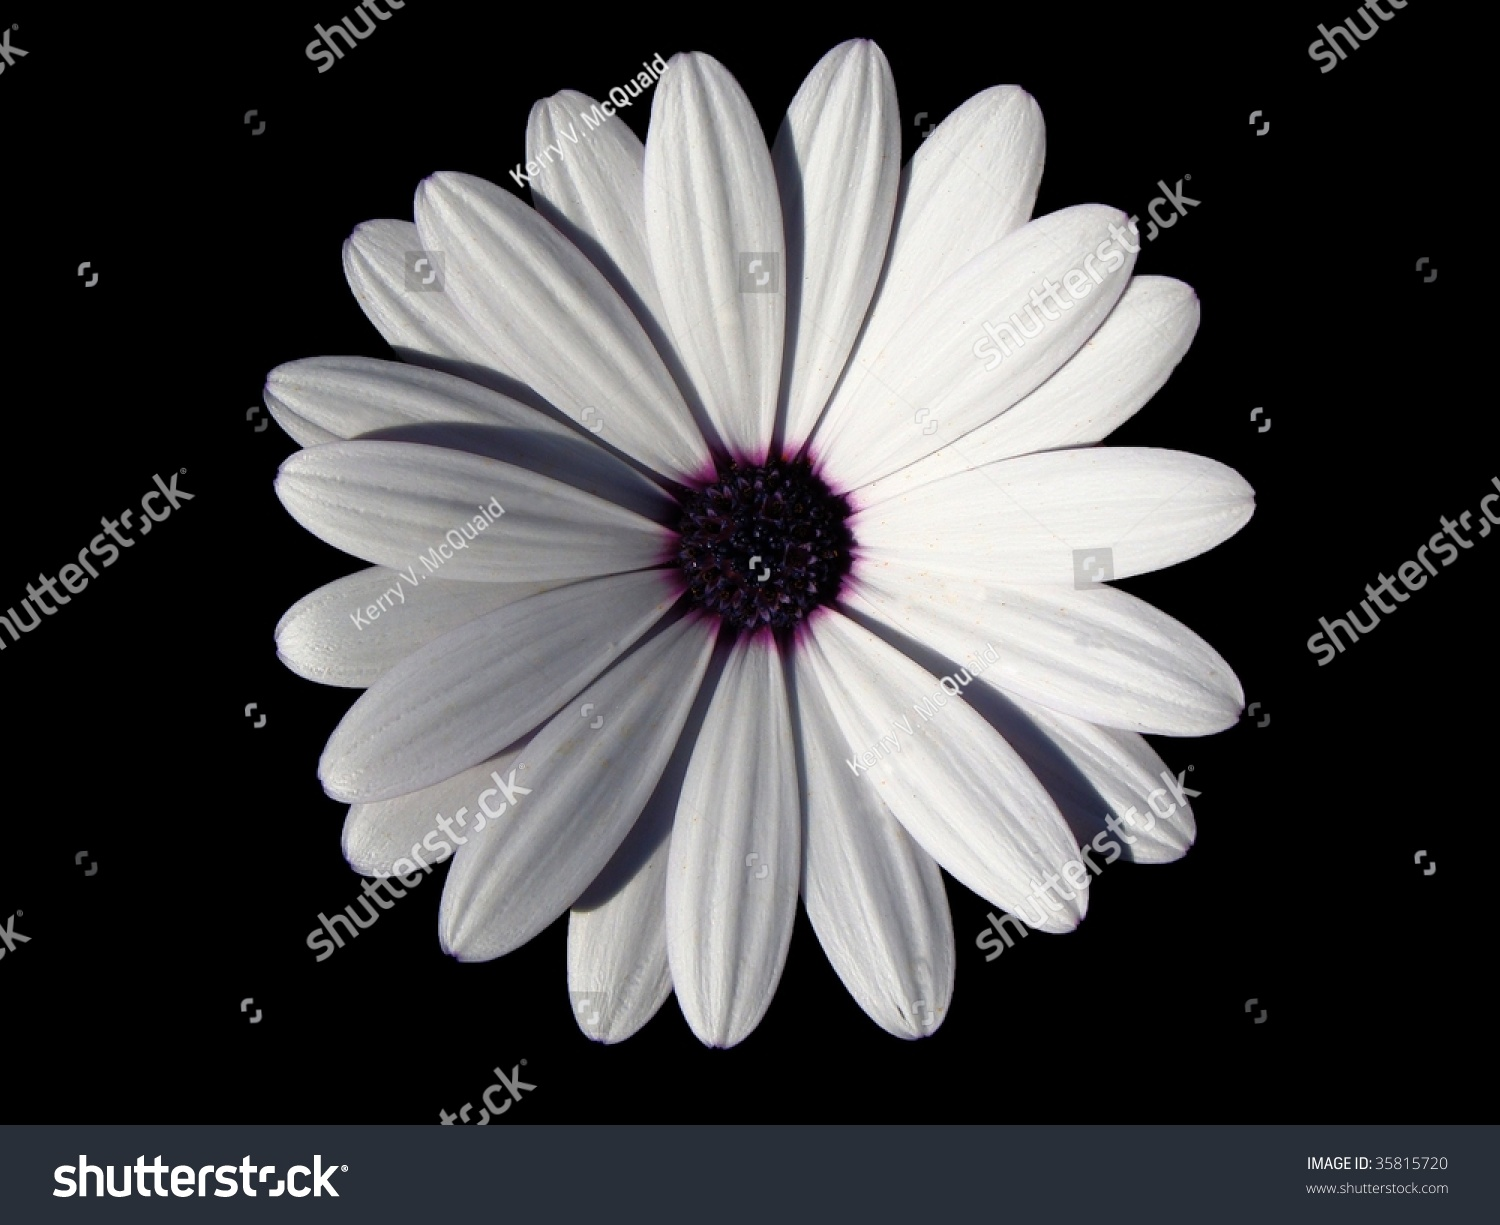 White daisy with dark purple center isolated on black background